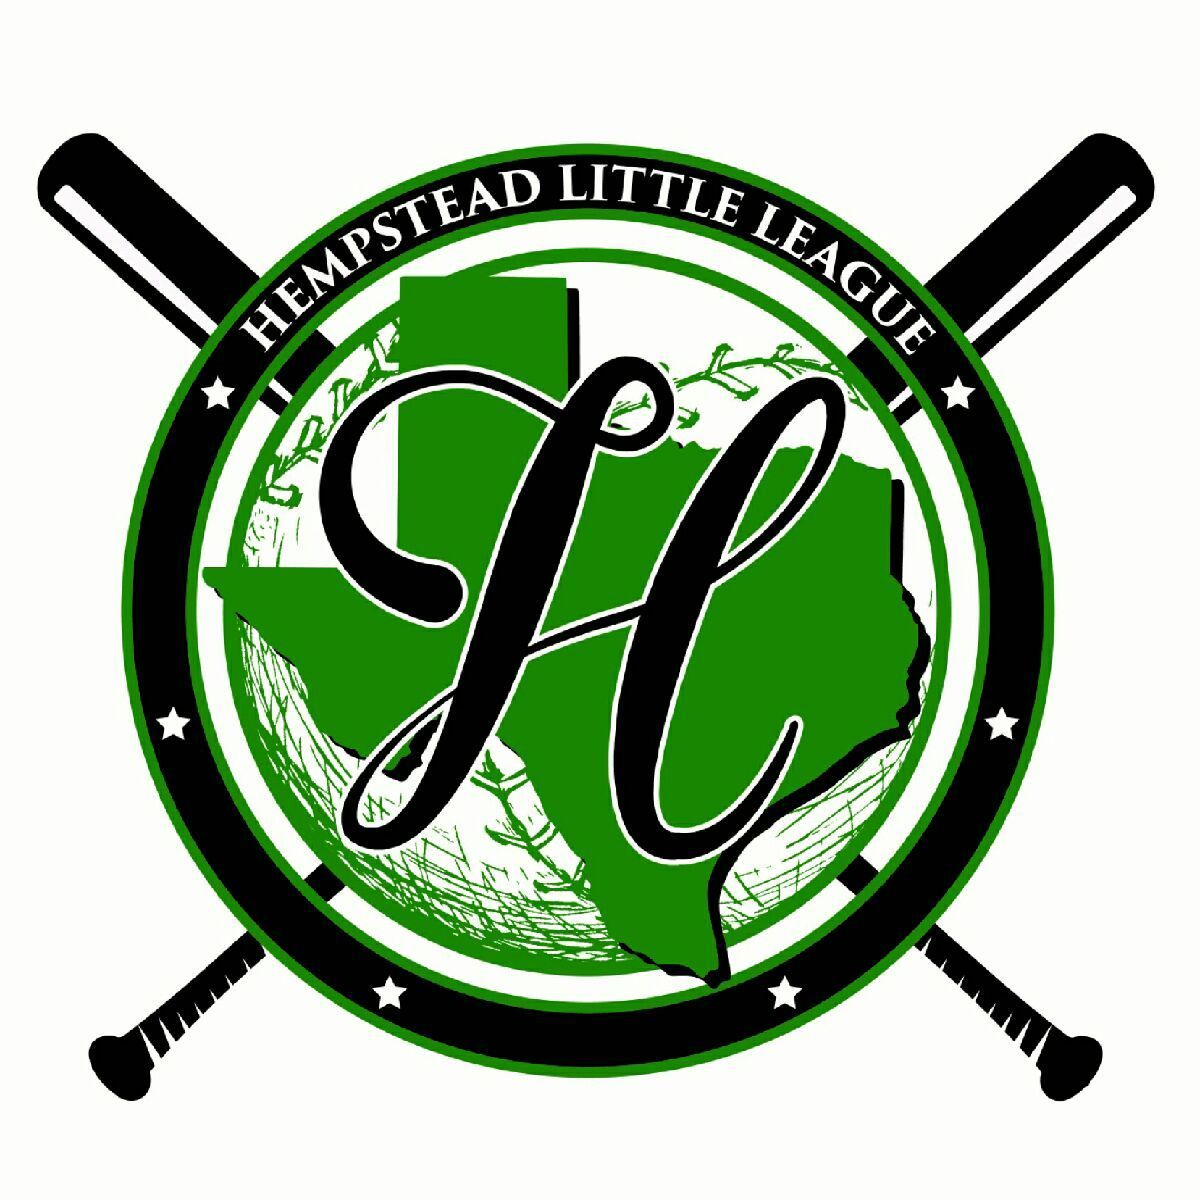 Hempstead Little League